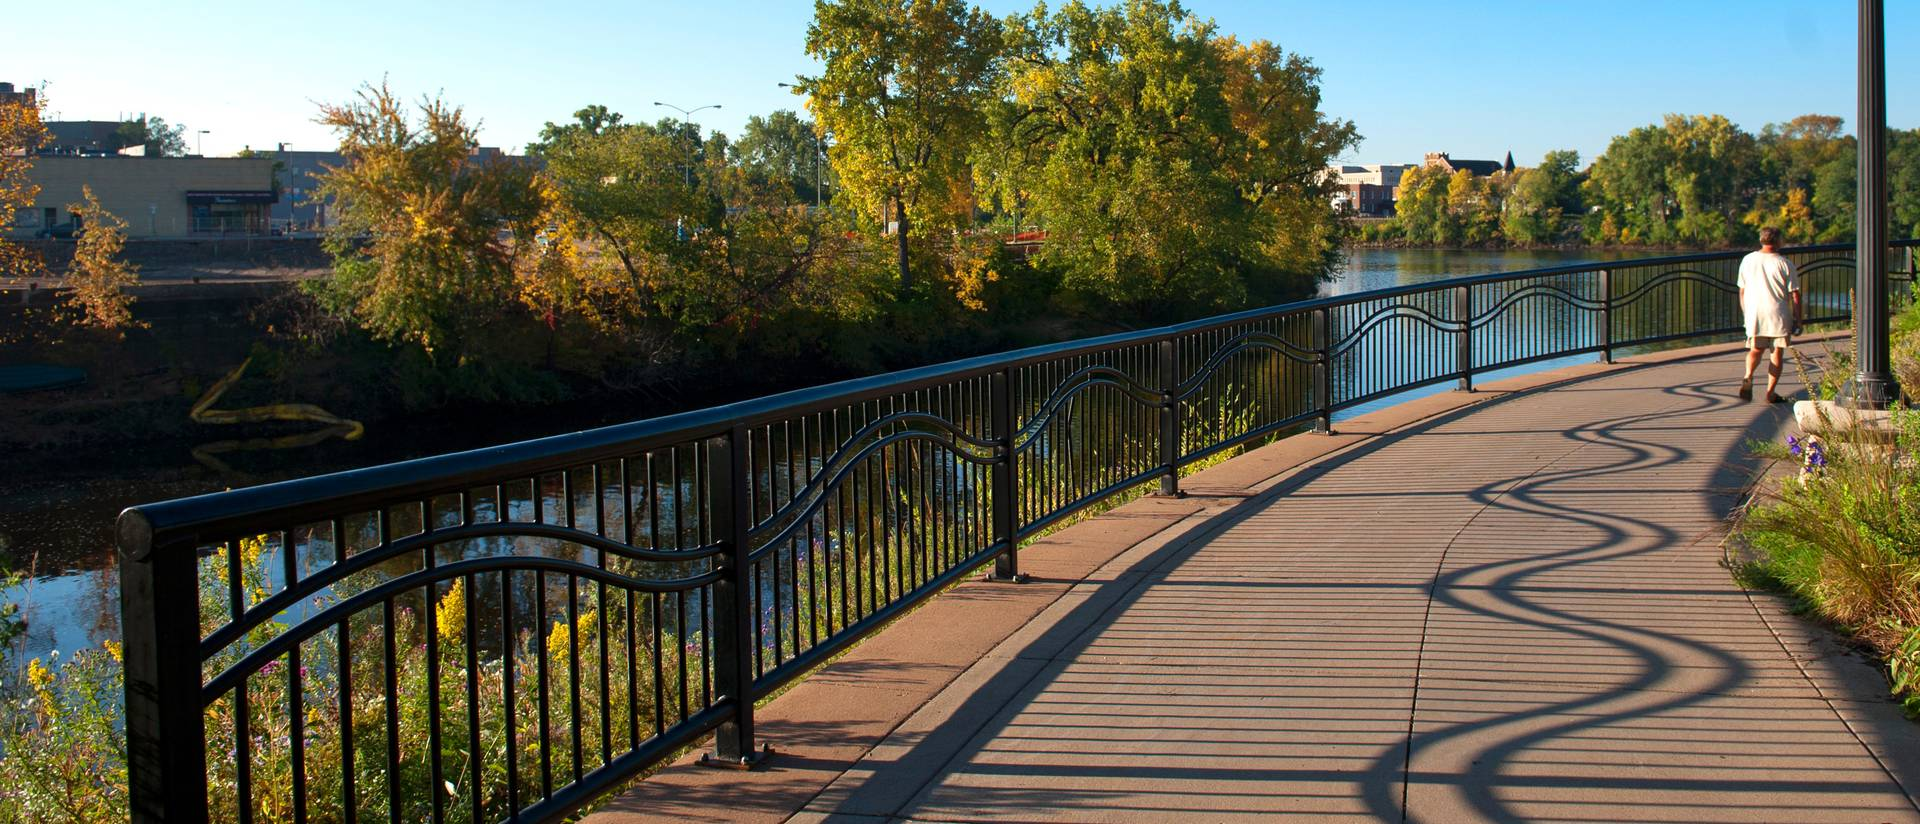 The Confluence Project, an estimated $80 million public-private development in downtown Eau Claire, continues to progress after receiving key support on several fronts.